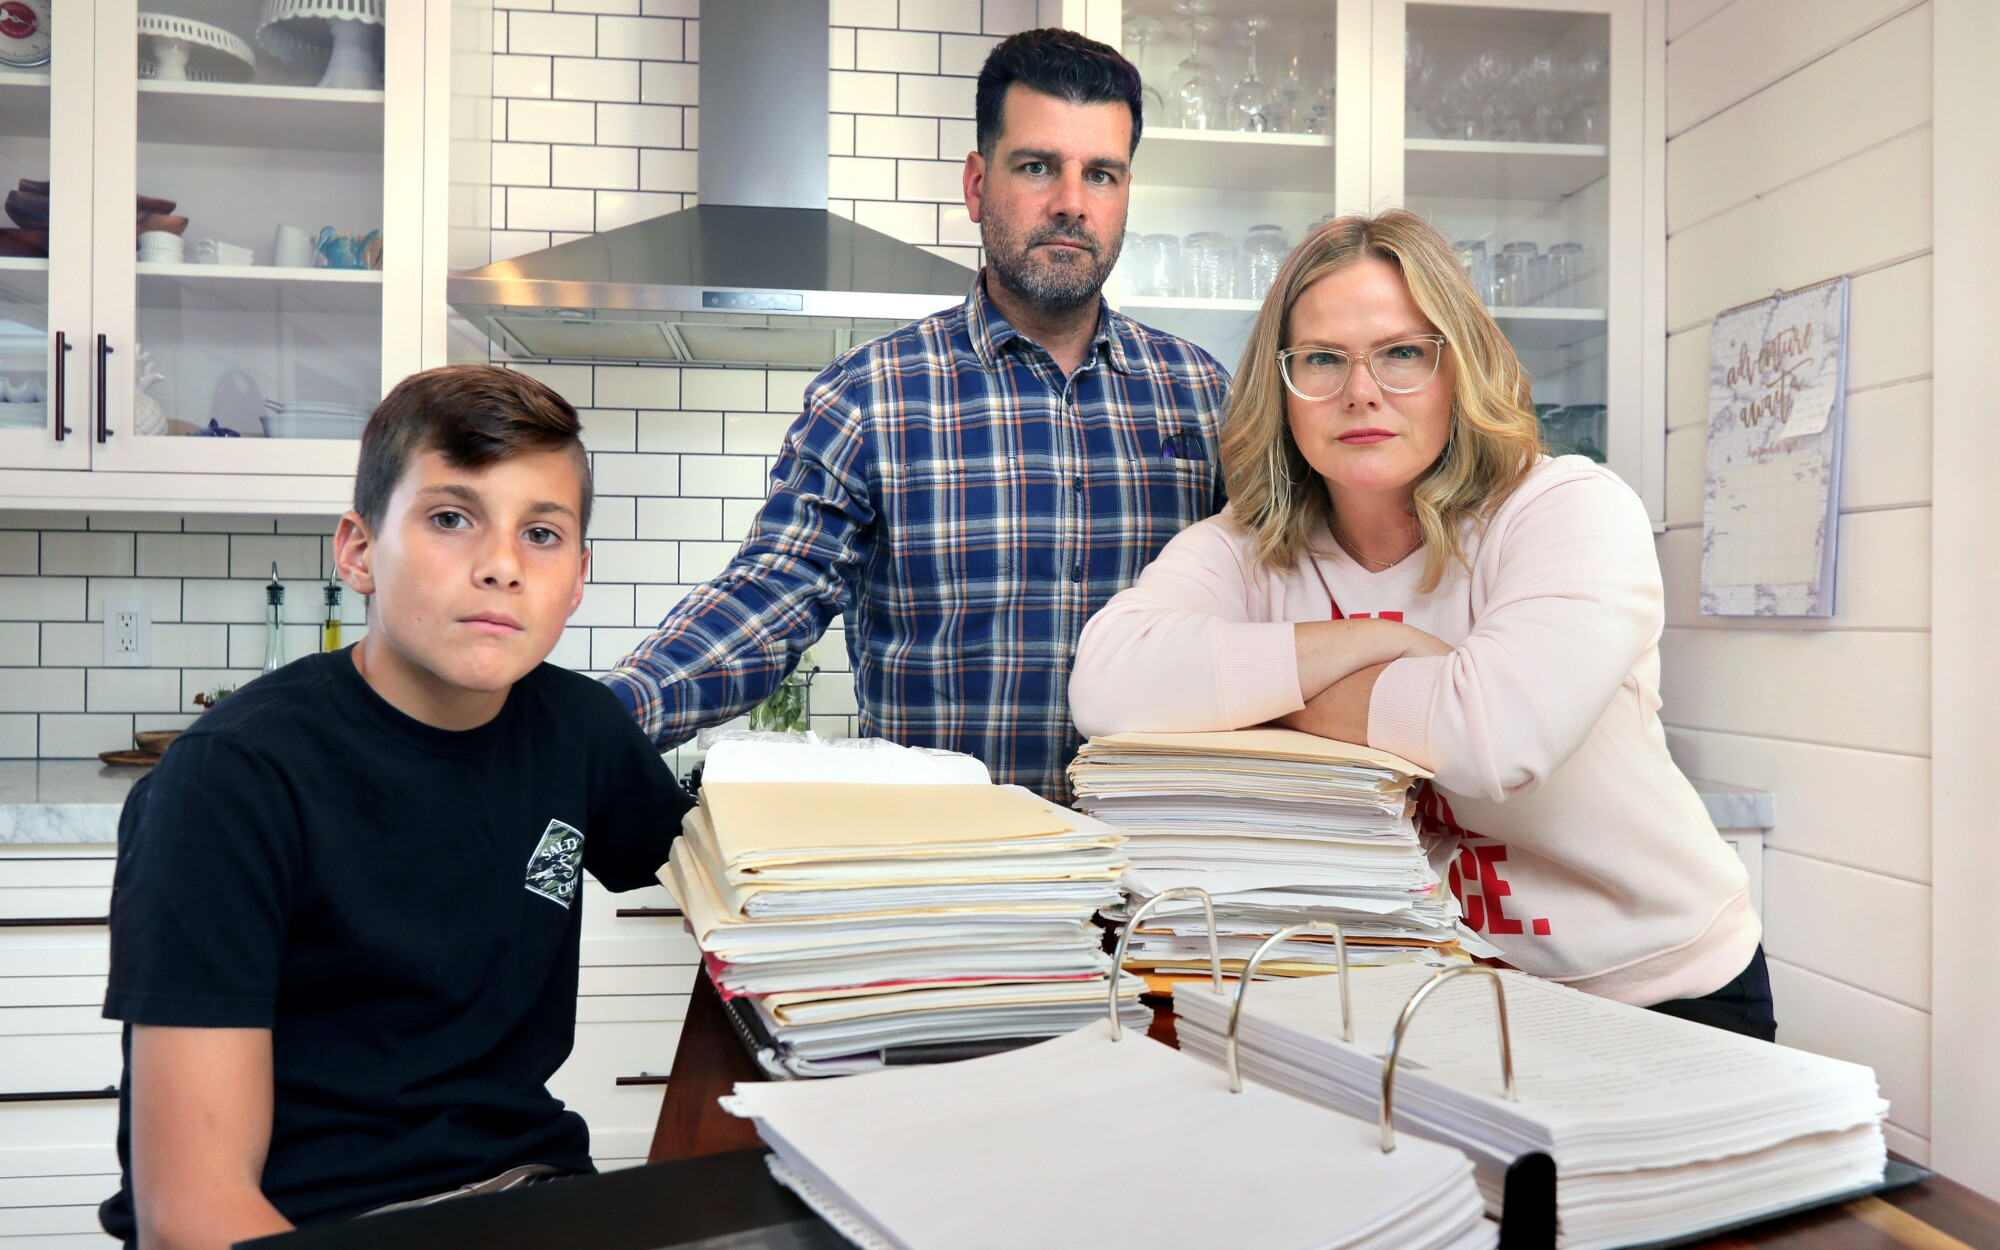 12 year old Diego Lazaro and his parents Oscar and Melissa Lazaro with all of the paper work they've accumulated in their years long effort to get the education they feel Diego deserves with his dyslexia.